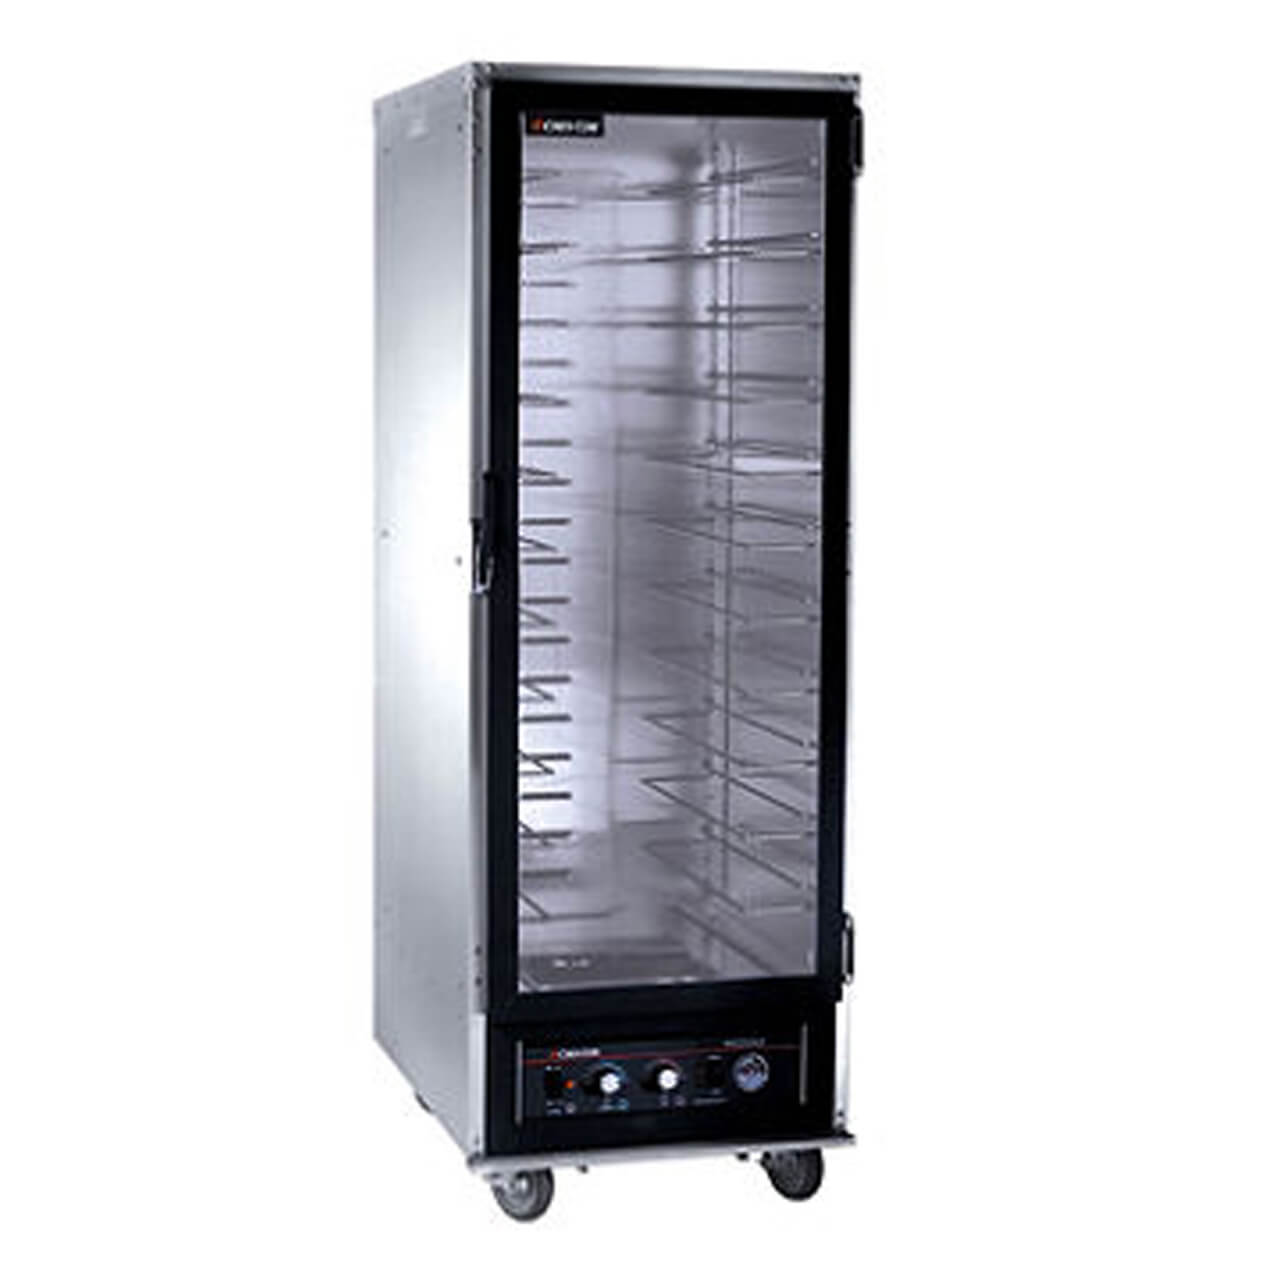 Food Warmer Rentals ~ Party rental electric food warmer sw florida exclusive